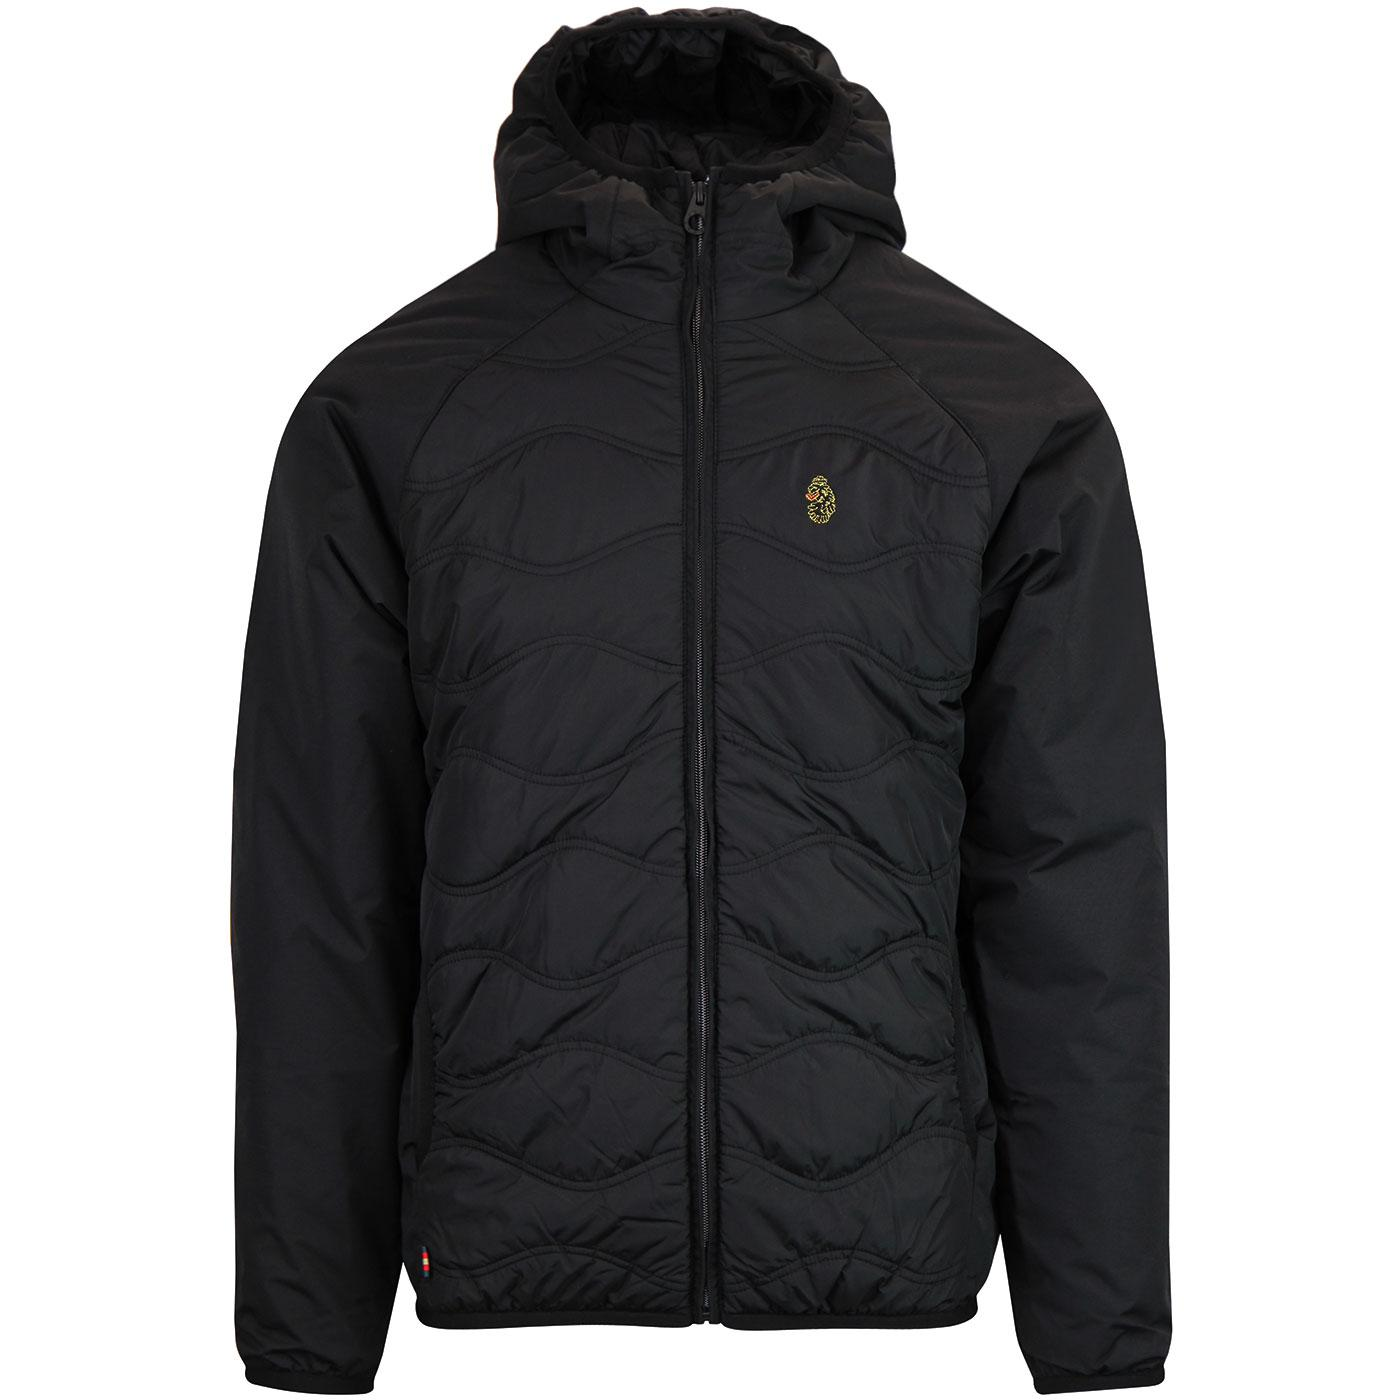 Roundy LUKE Retro Men's Quilted Ski Jacket (B)